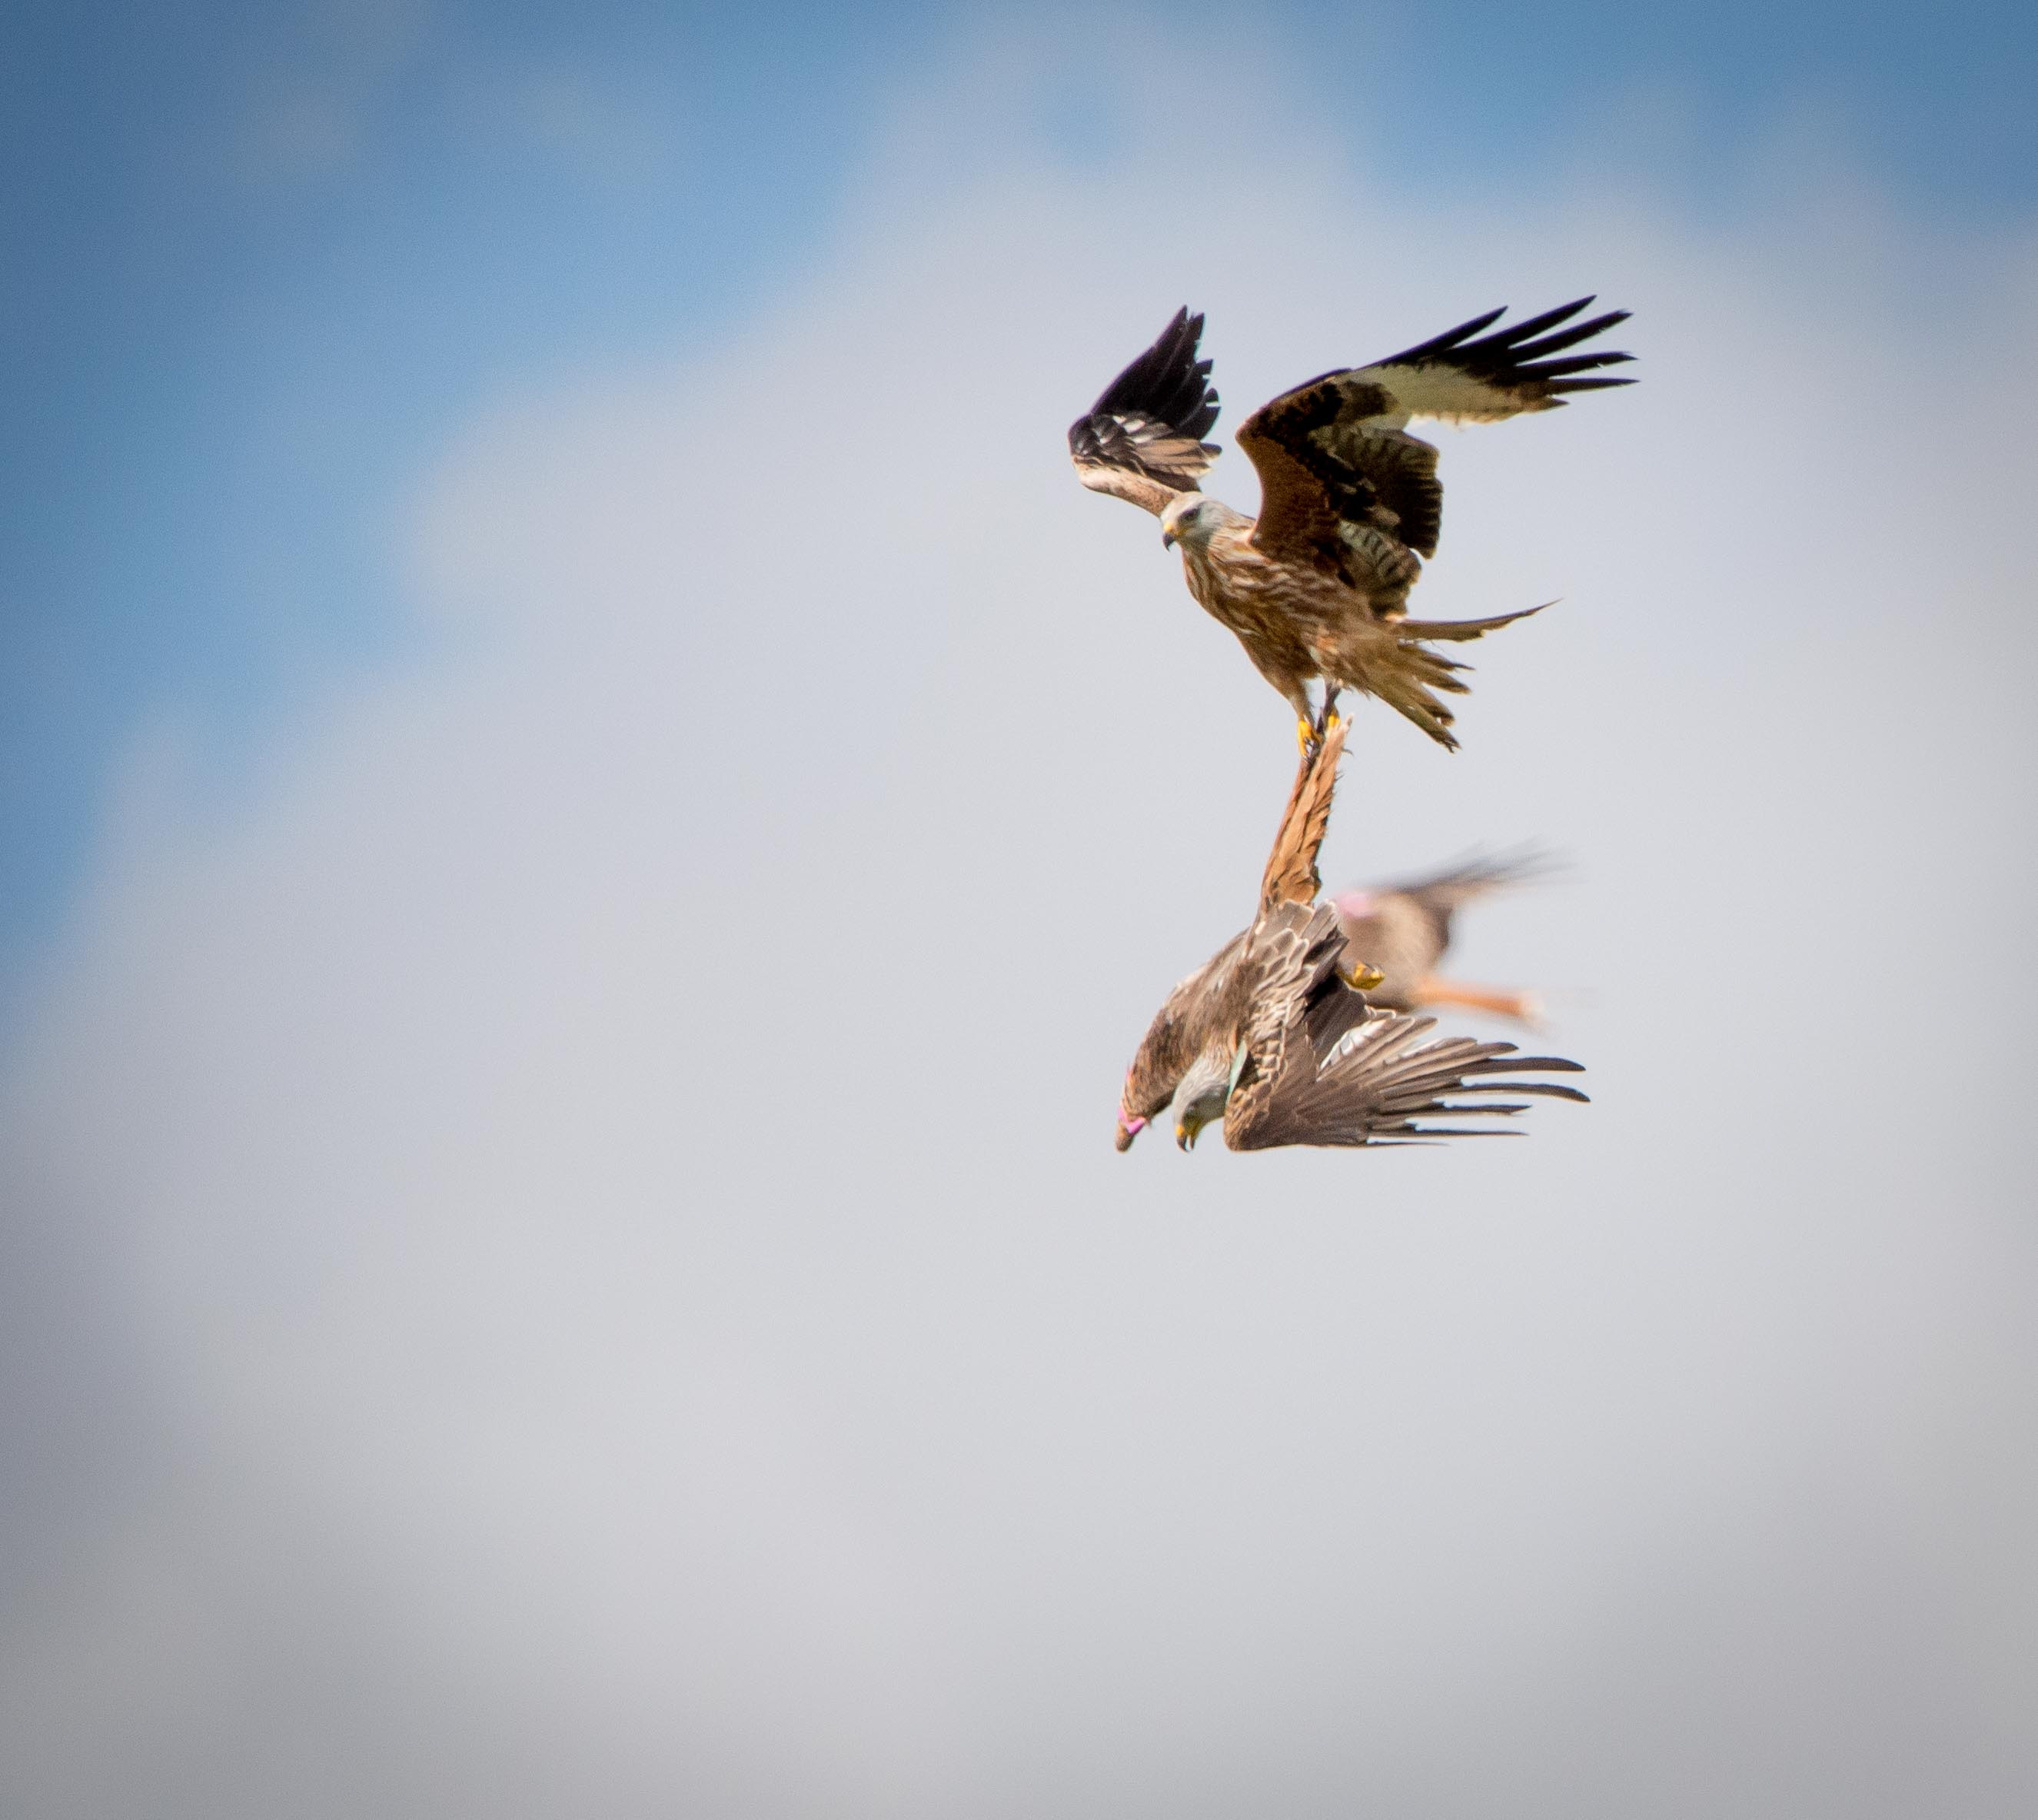 Red Kite - Tail grab-6557.jpg